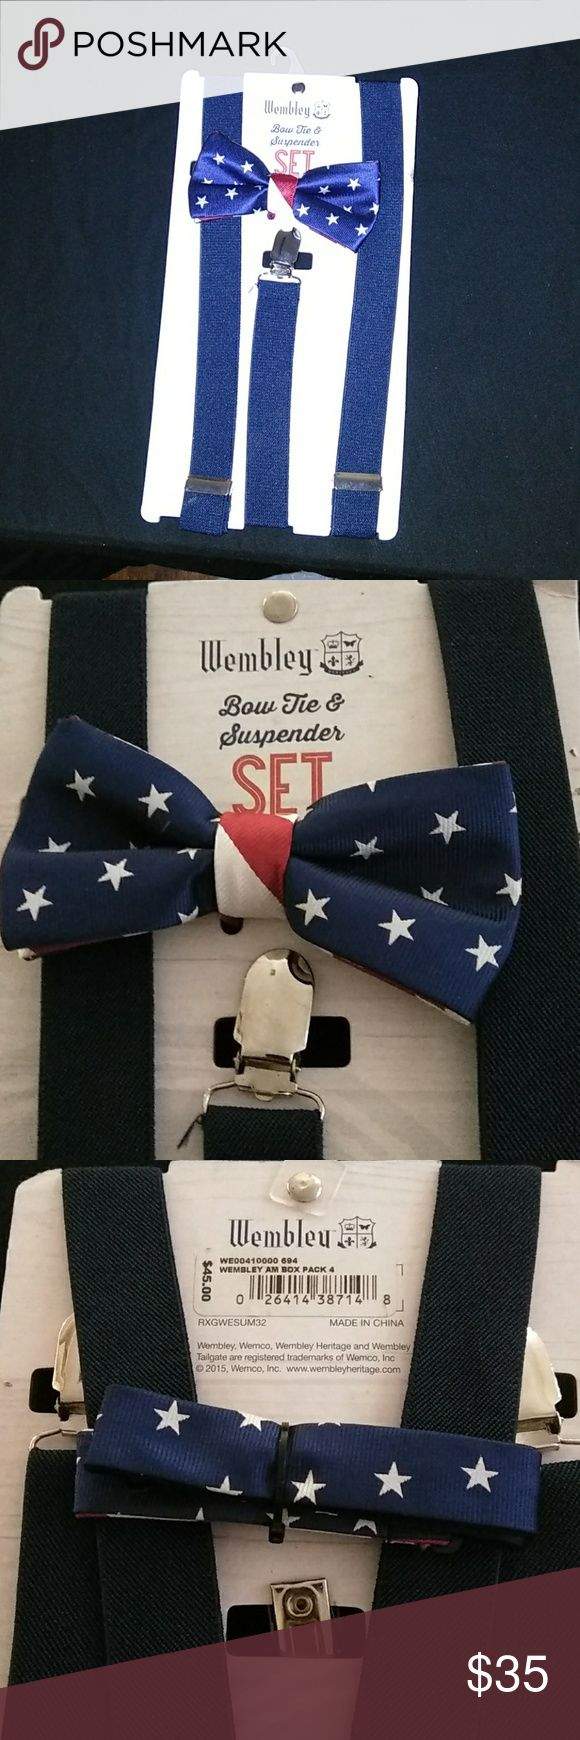 Wembley bow tie & suspender set Brand new never used Wembley Accessories Suspenders